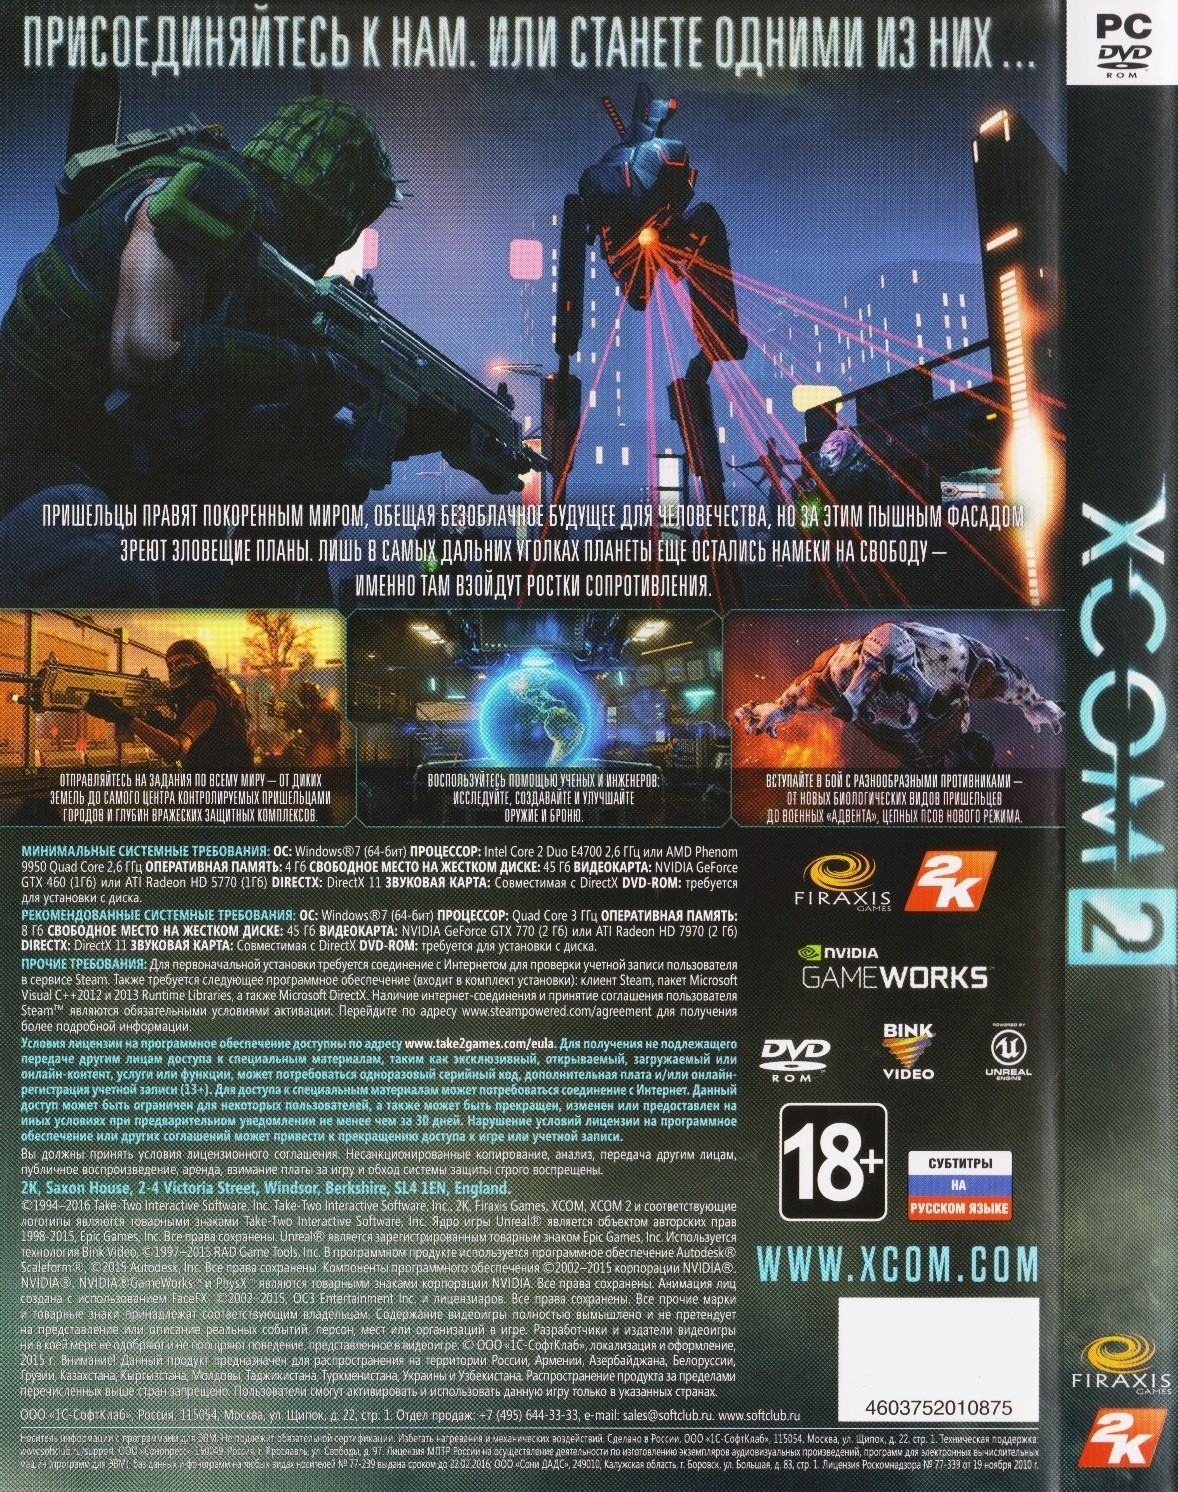 XCOM 2 + RESISTANCE WARRIOR (Photo CD-Key) Steam